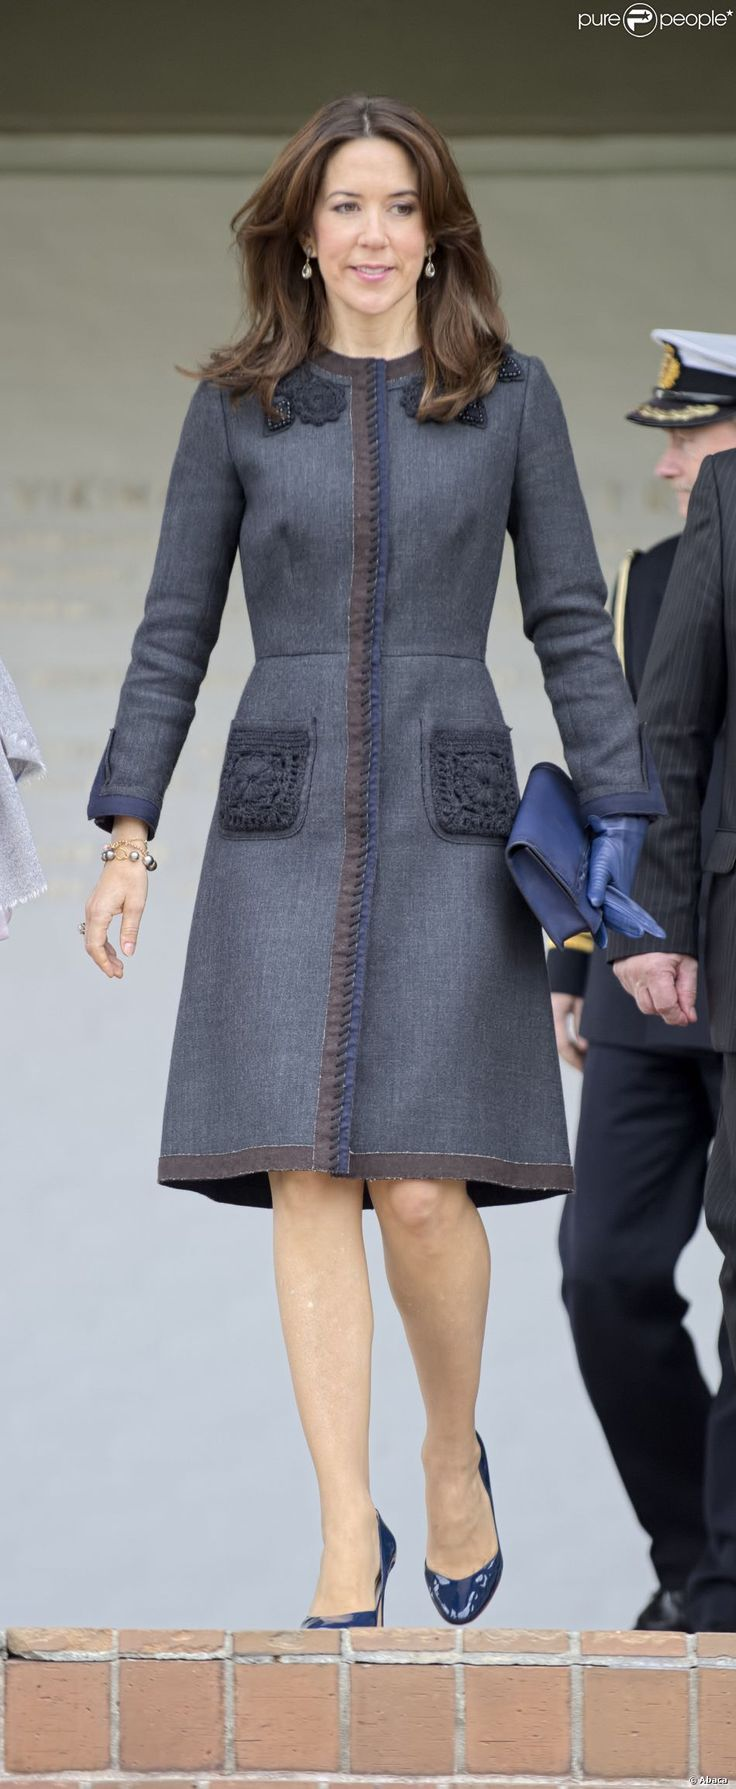 Navy and gray coat dress on Crown Princess Mary of Denmark